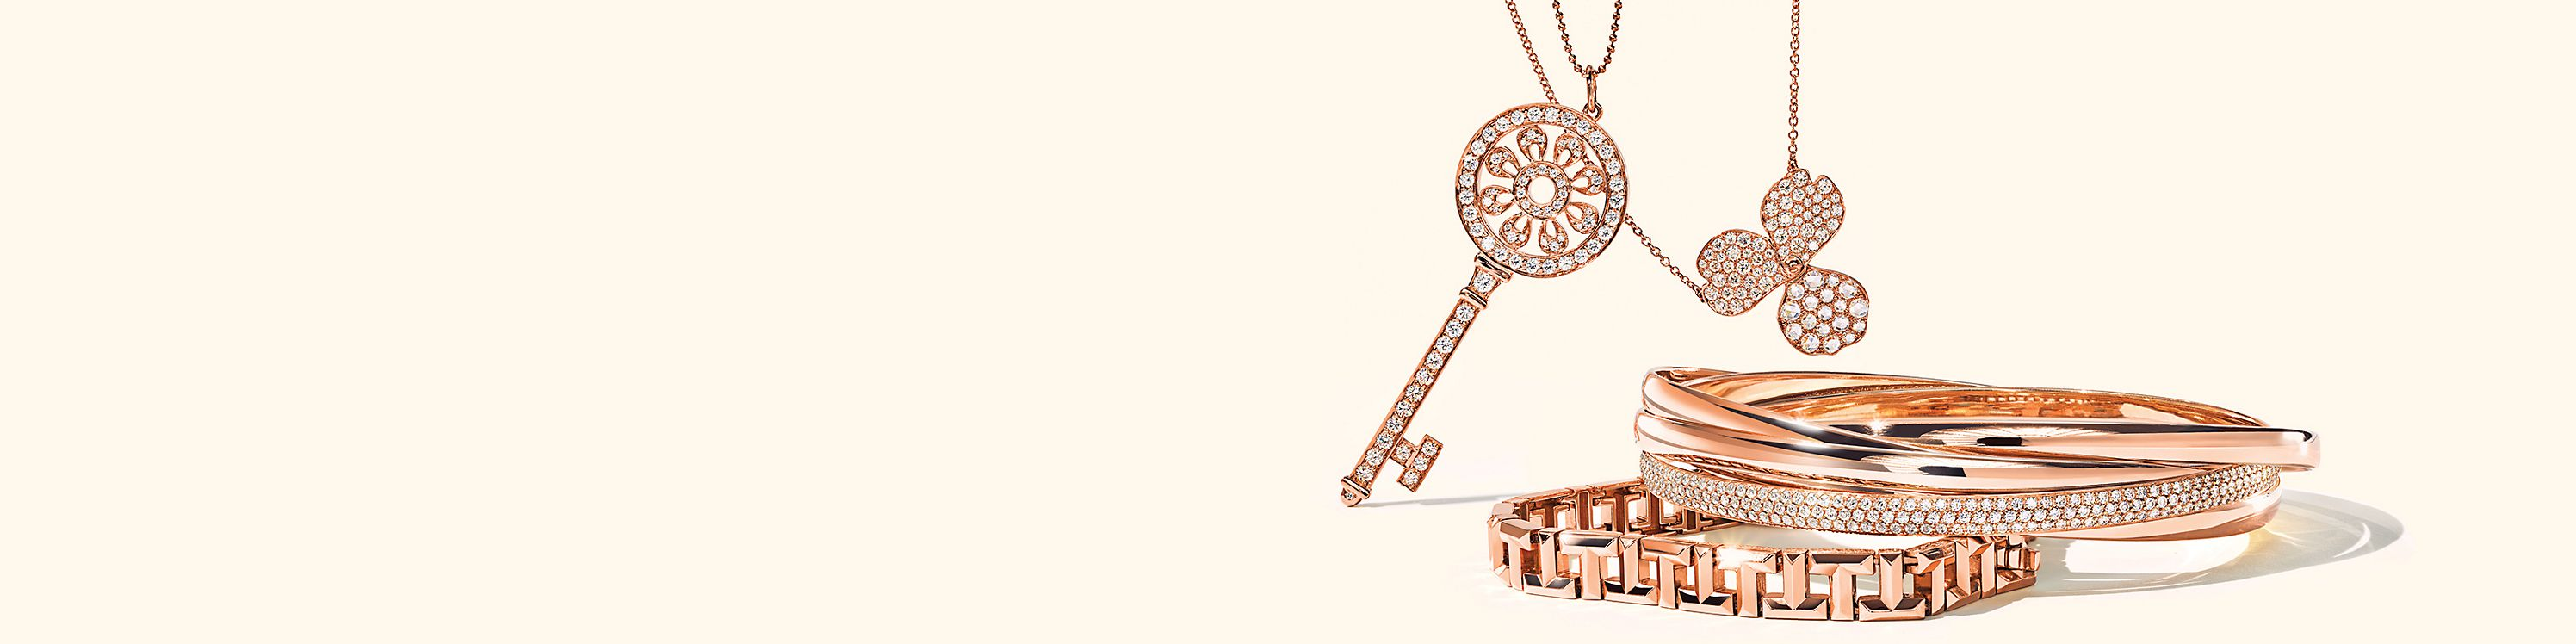 Tiffany & Co. Rose Gold Jewelry